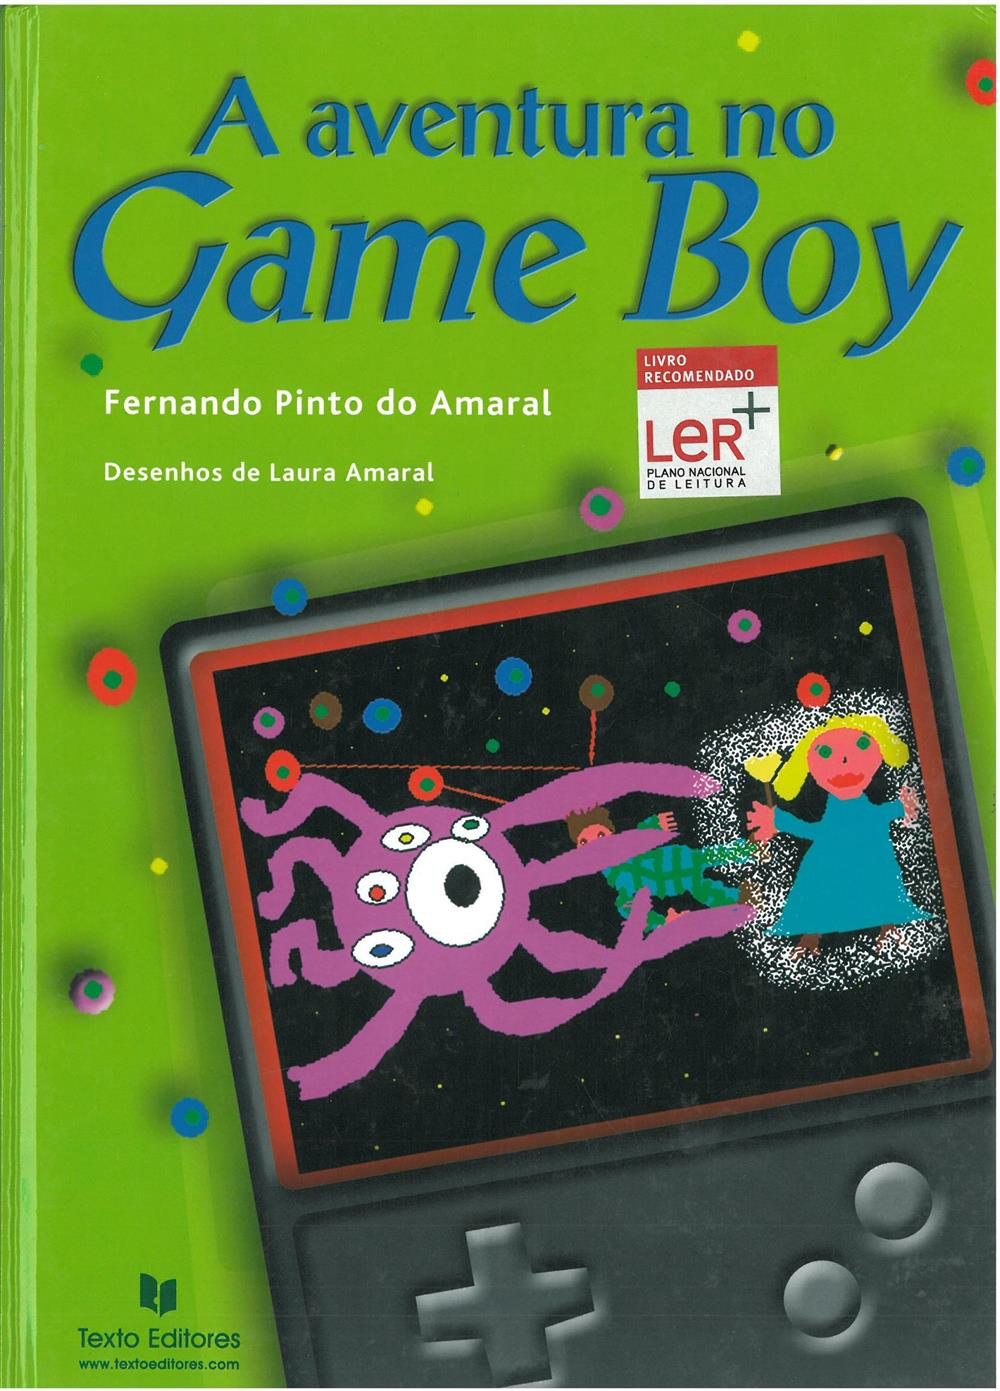 A aventura no game boy_.jpg